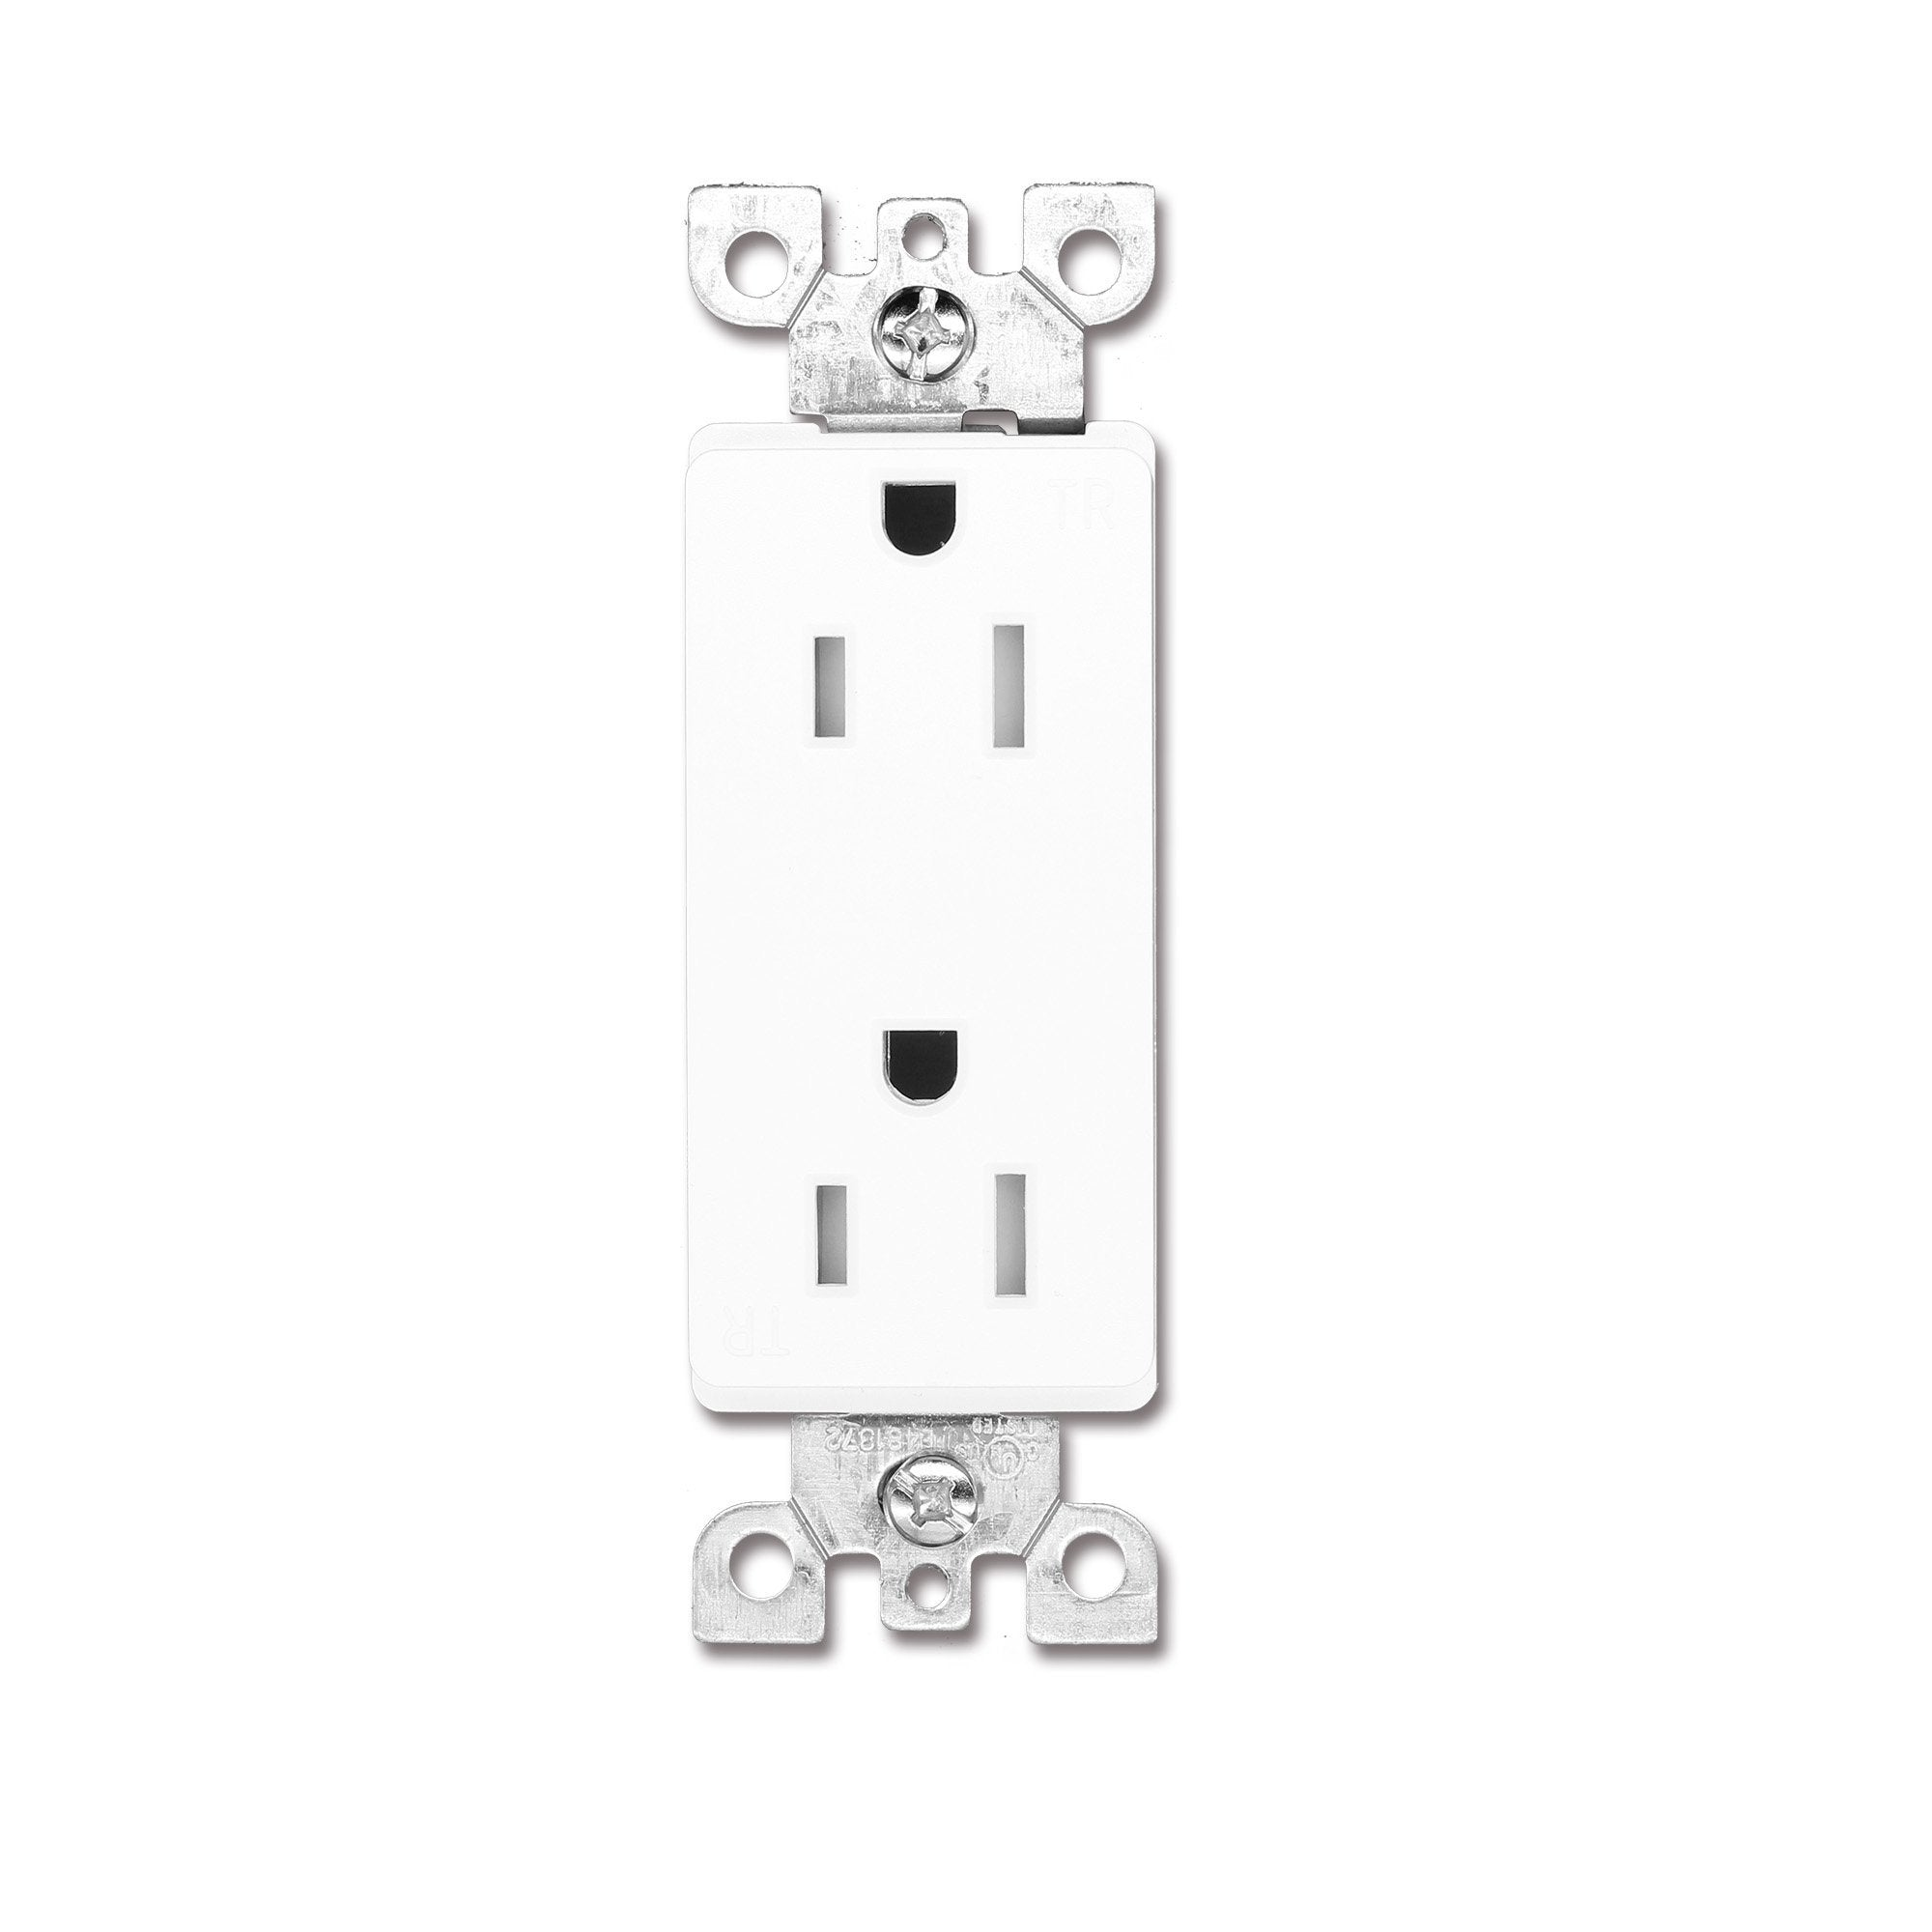 QPLUS 20Amp Tamper Resistant Wall Outlet - UL Listed (Wall Plates & Screws Included) - QPlus Home - Brighten Your Life